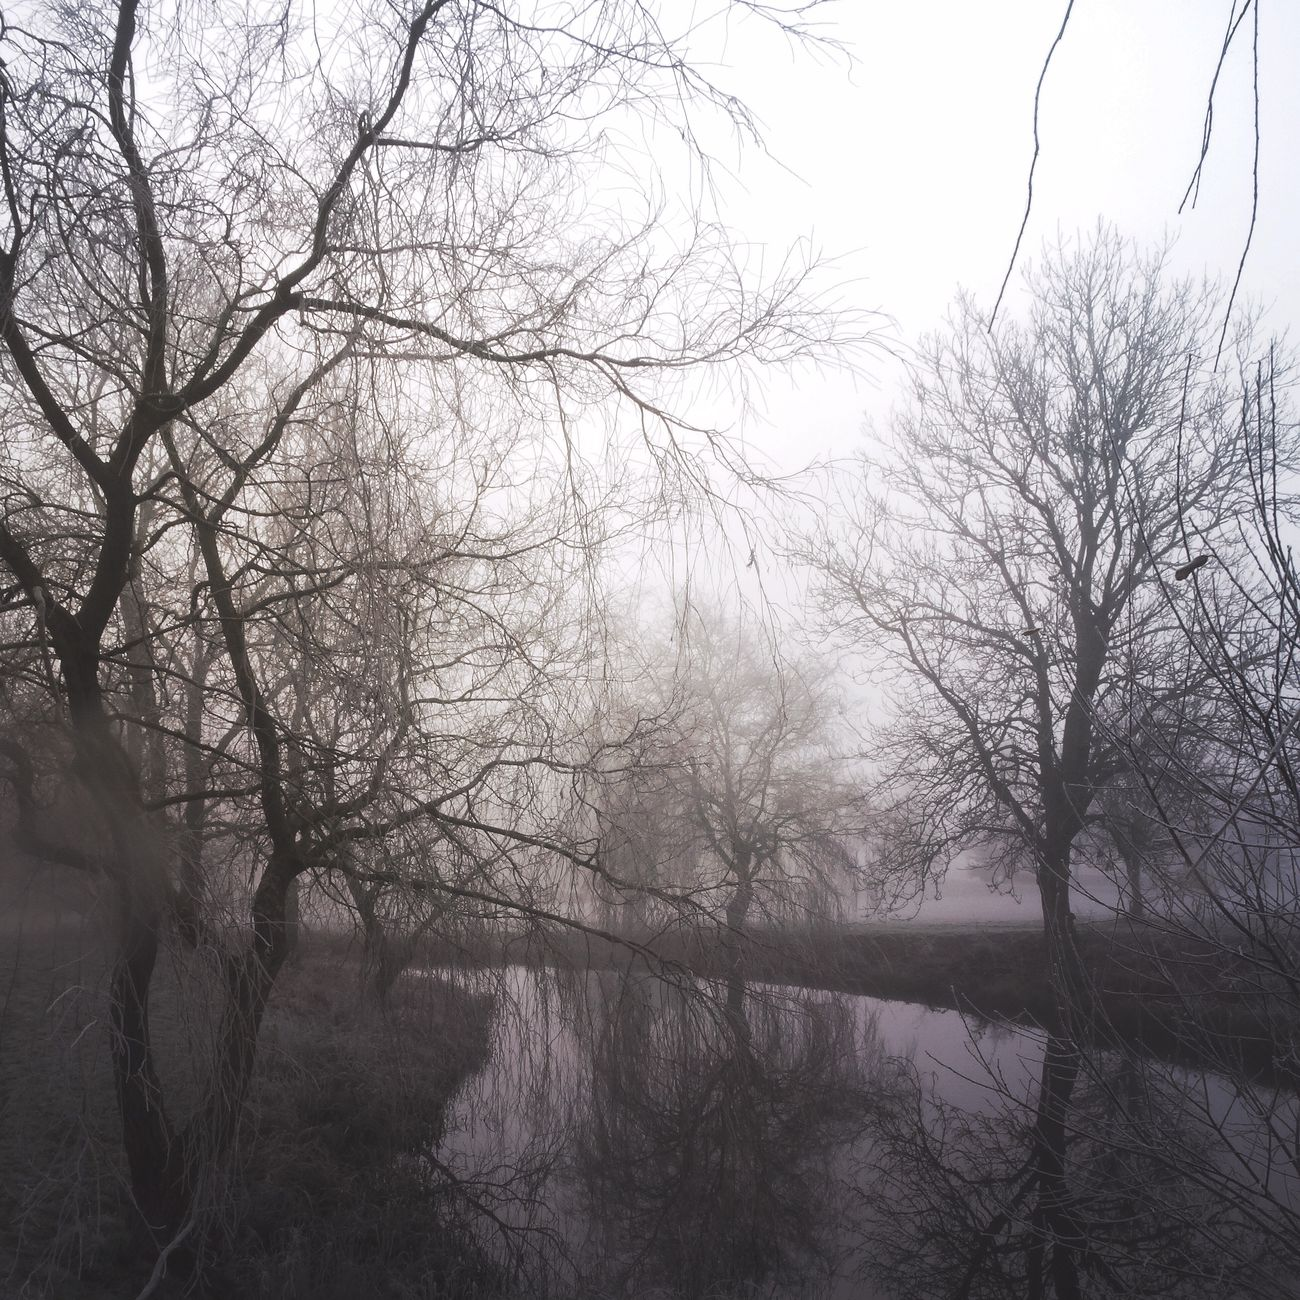 Bare Tree Nature Fog Tranquility Beauty In Nature Tree Outdoors